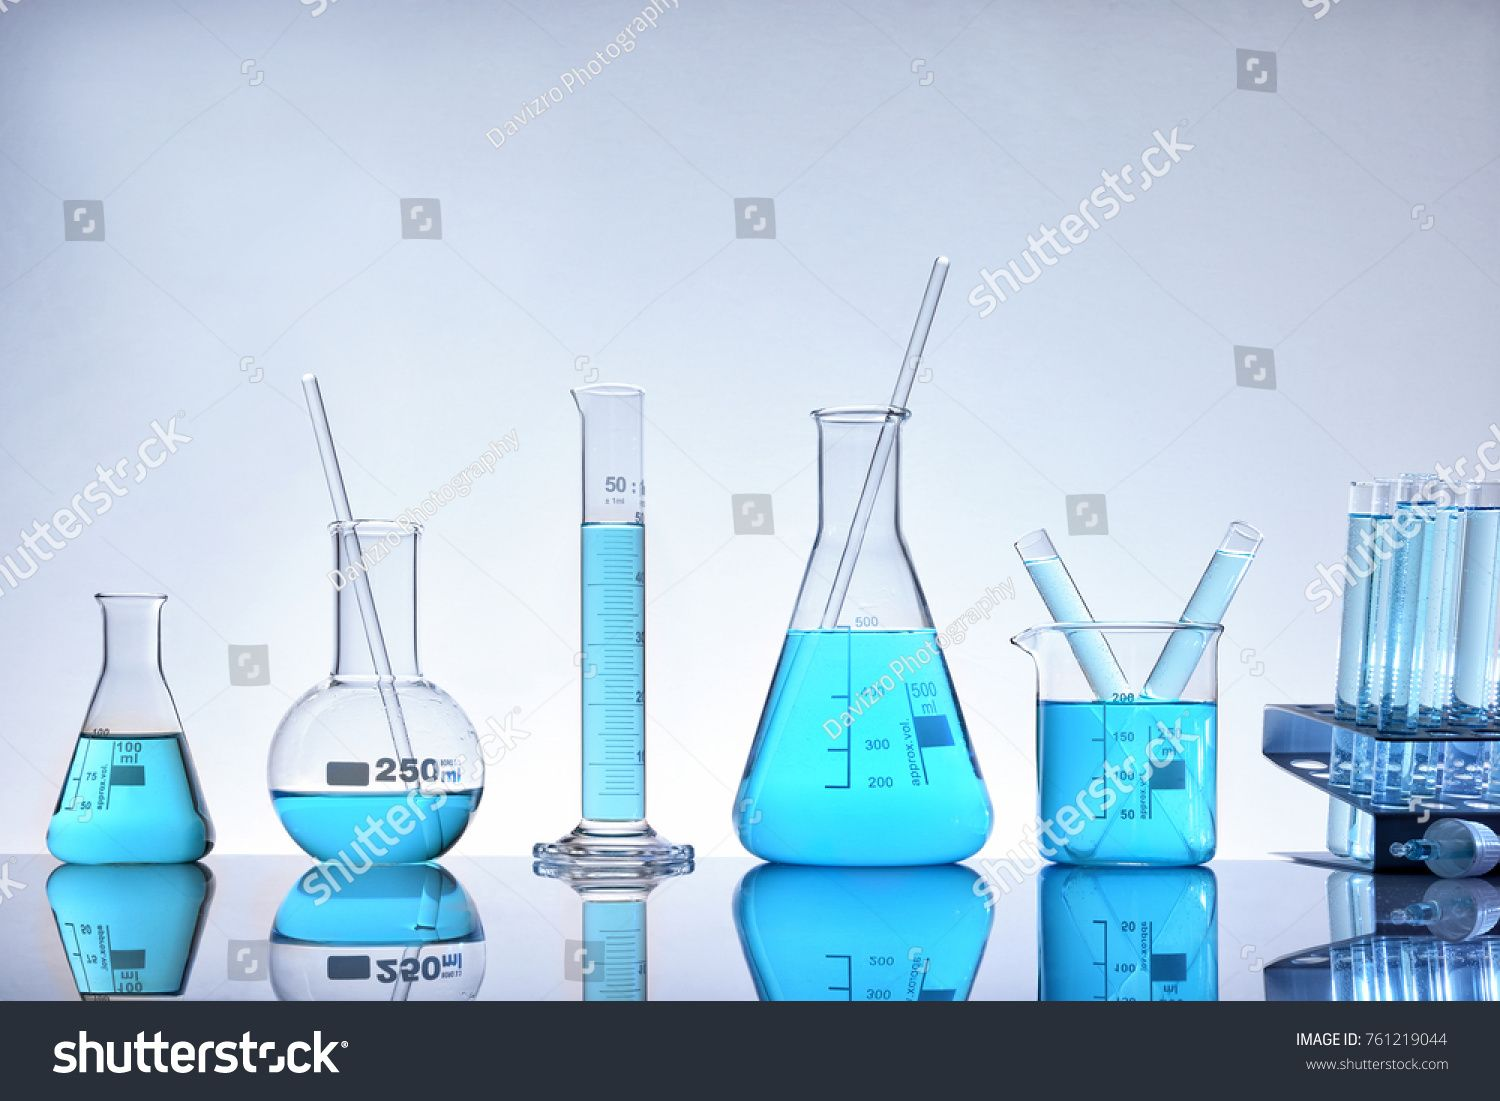 Laboratory Glass Chemical Containers Full Of Blue Liquid On Glass Table Isolated Horizontal Composition Front V Mandala Design Art Stock Photos Photo Editing